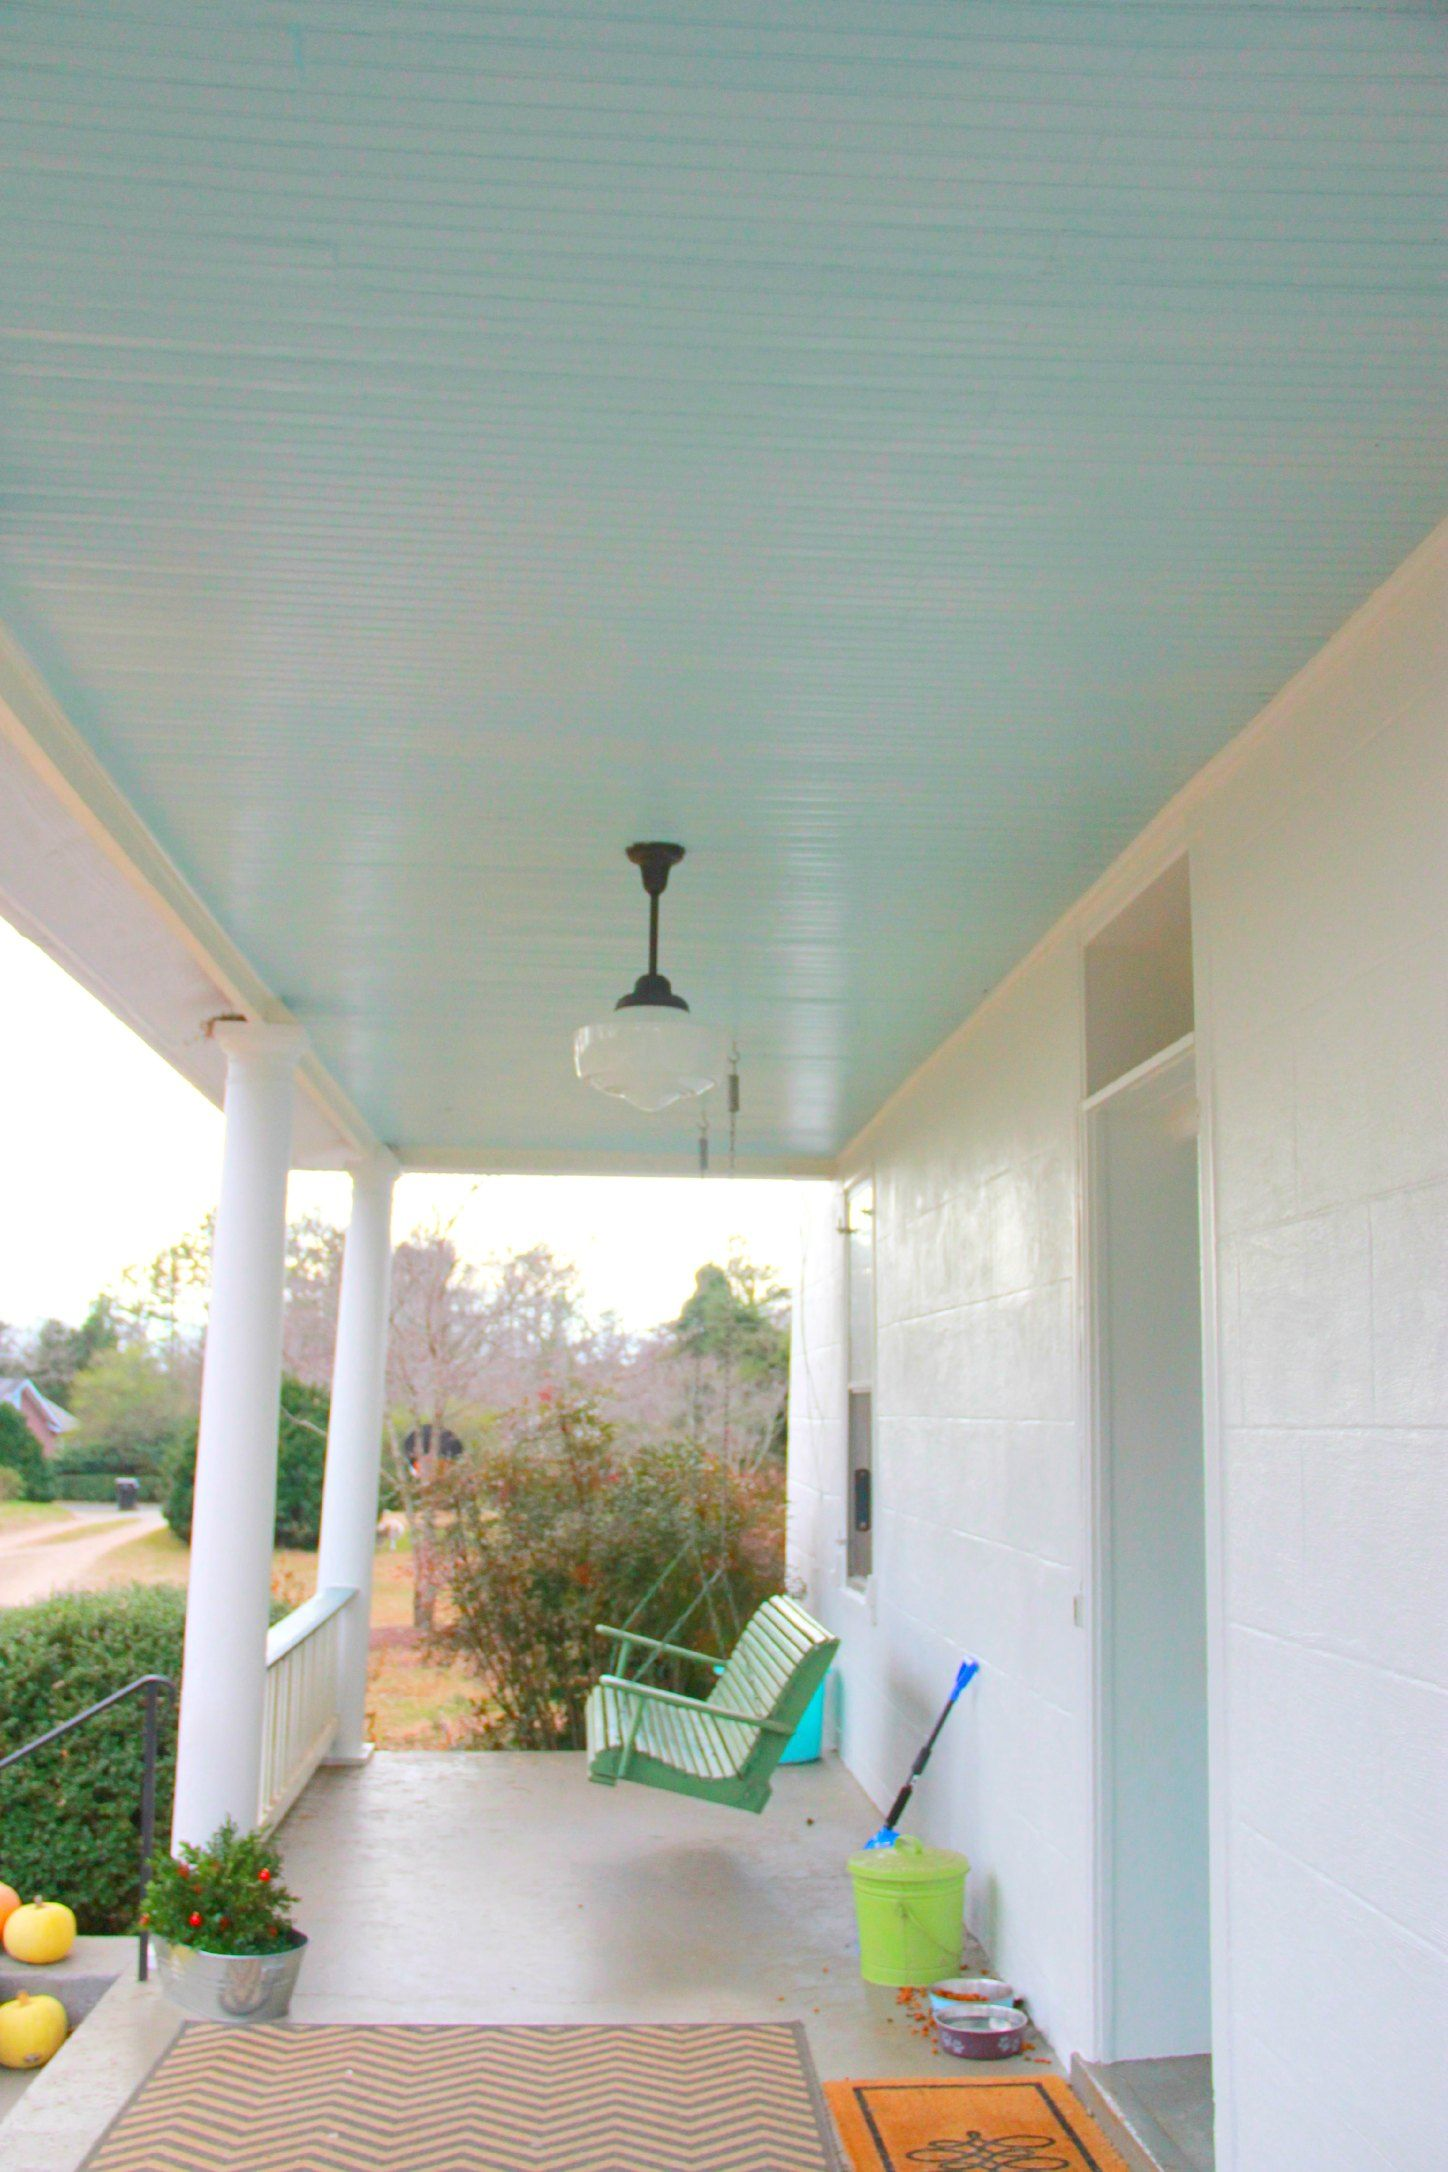 Tradition Of Painting Porch Ceilings Blue